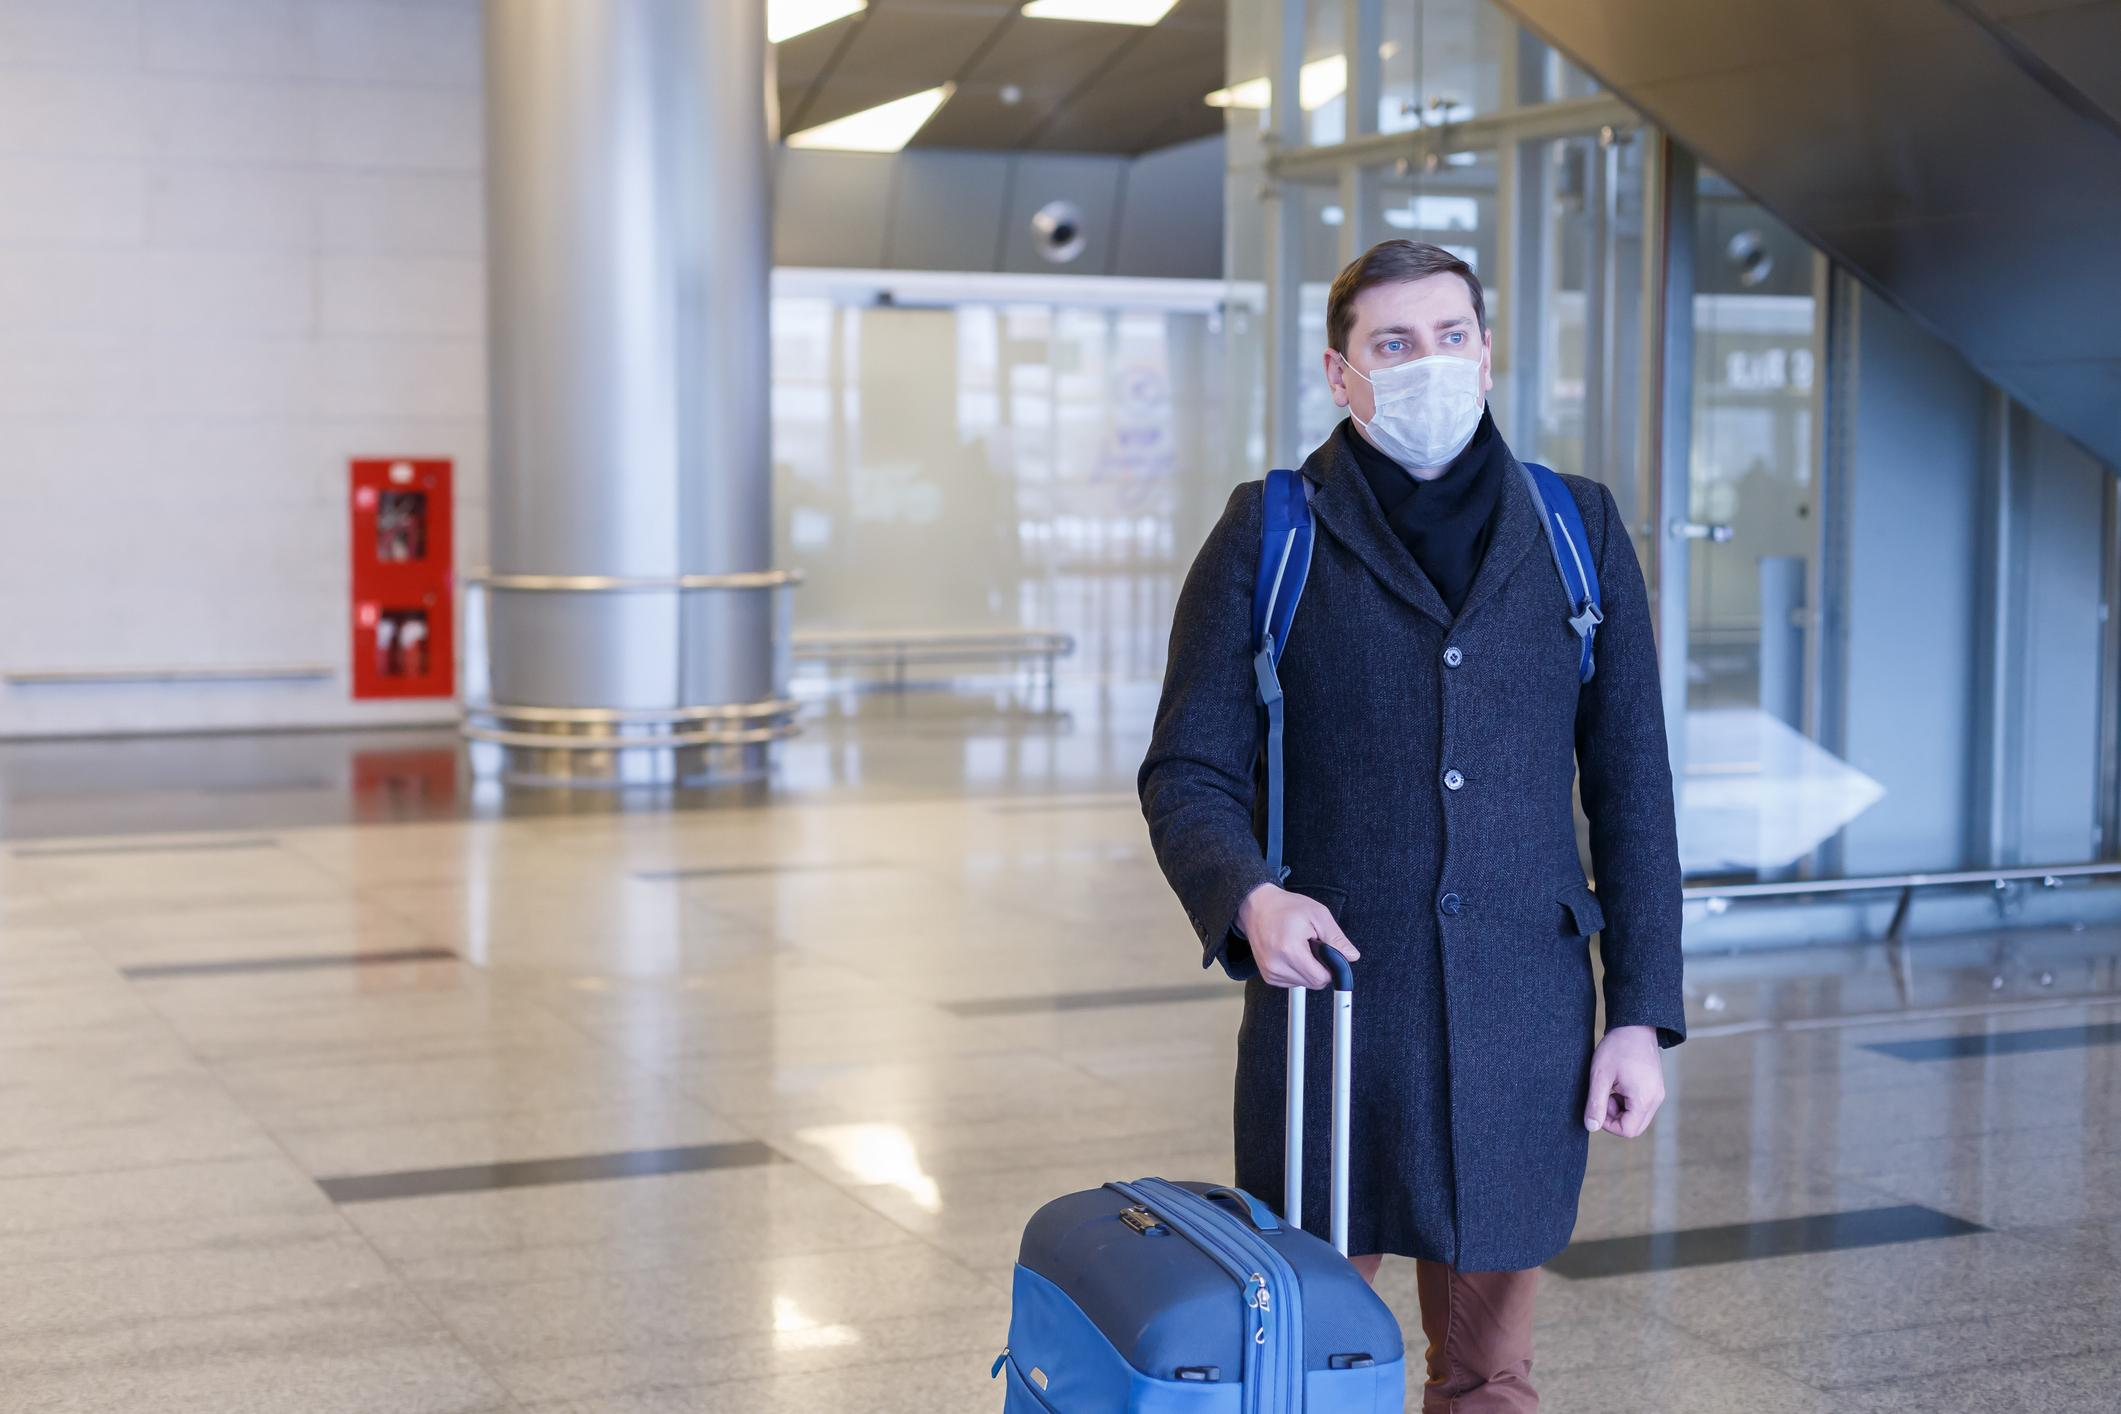 AM800-News-Traveler-Airport-Flight-Coronavirus